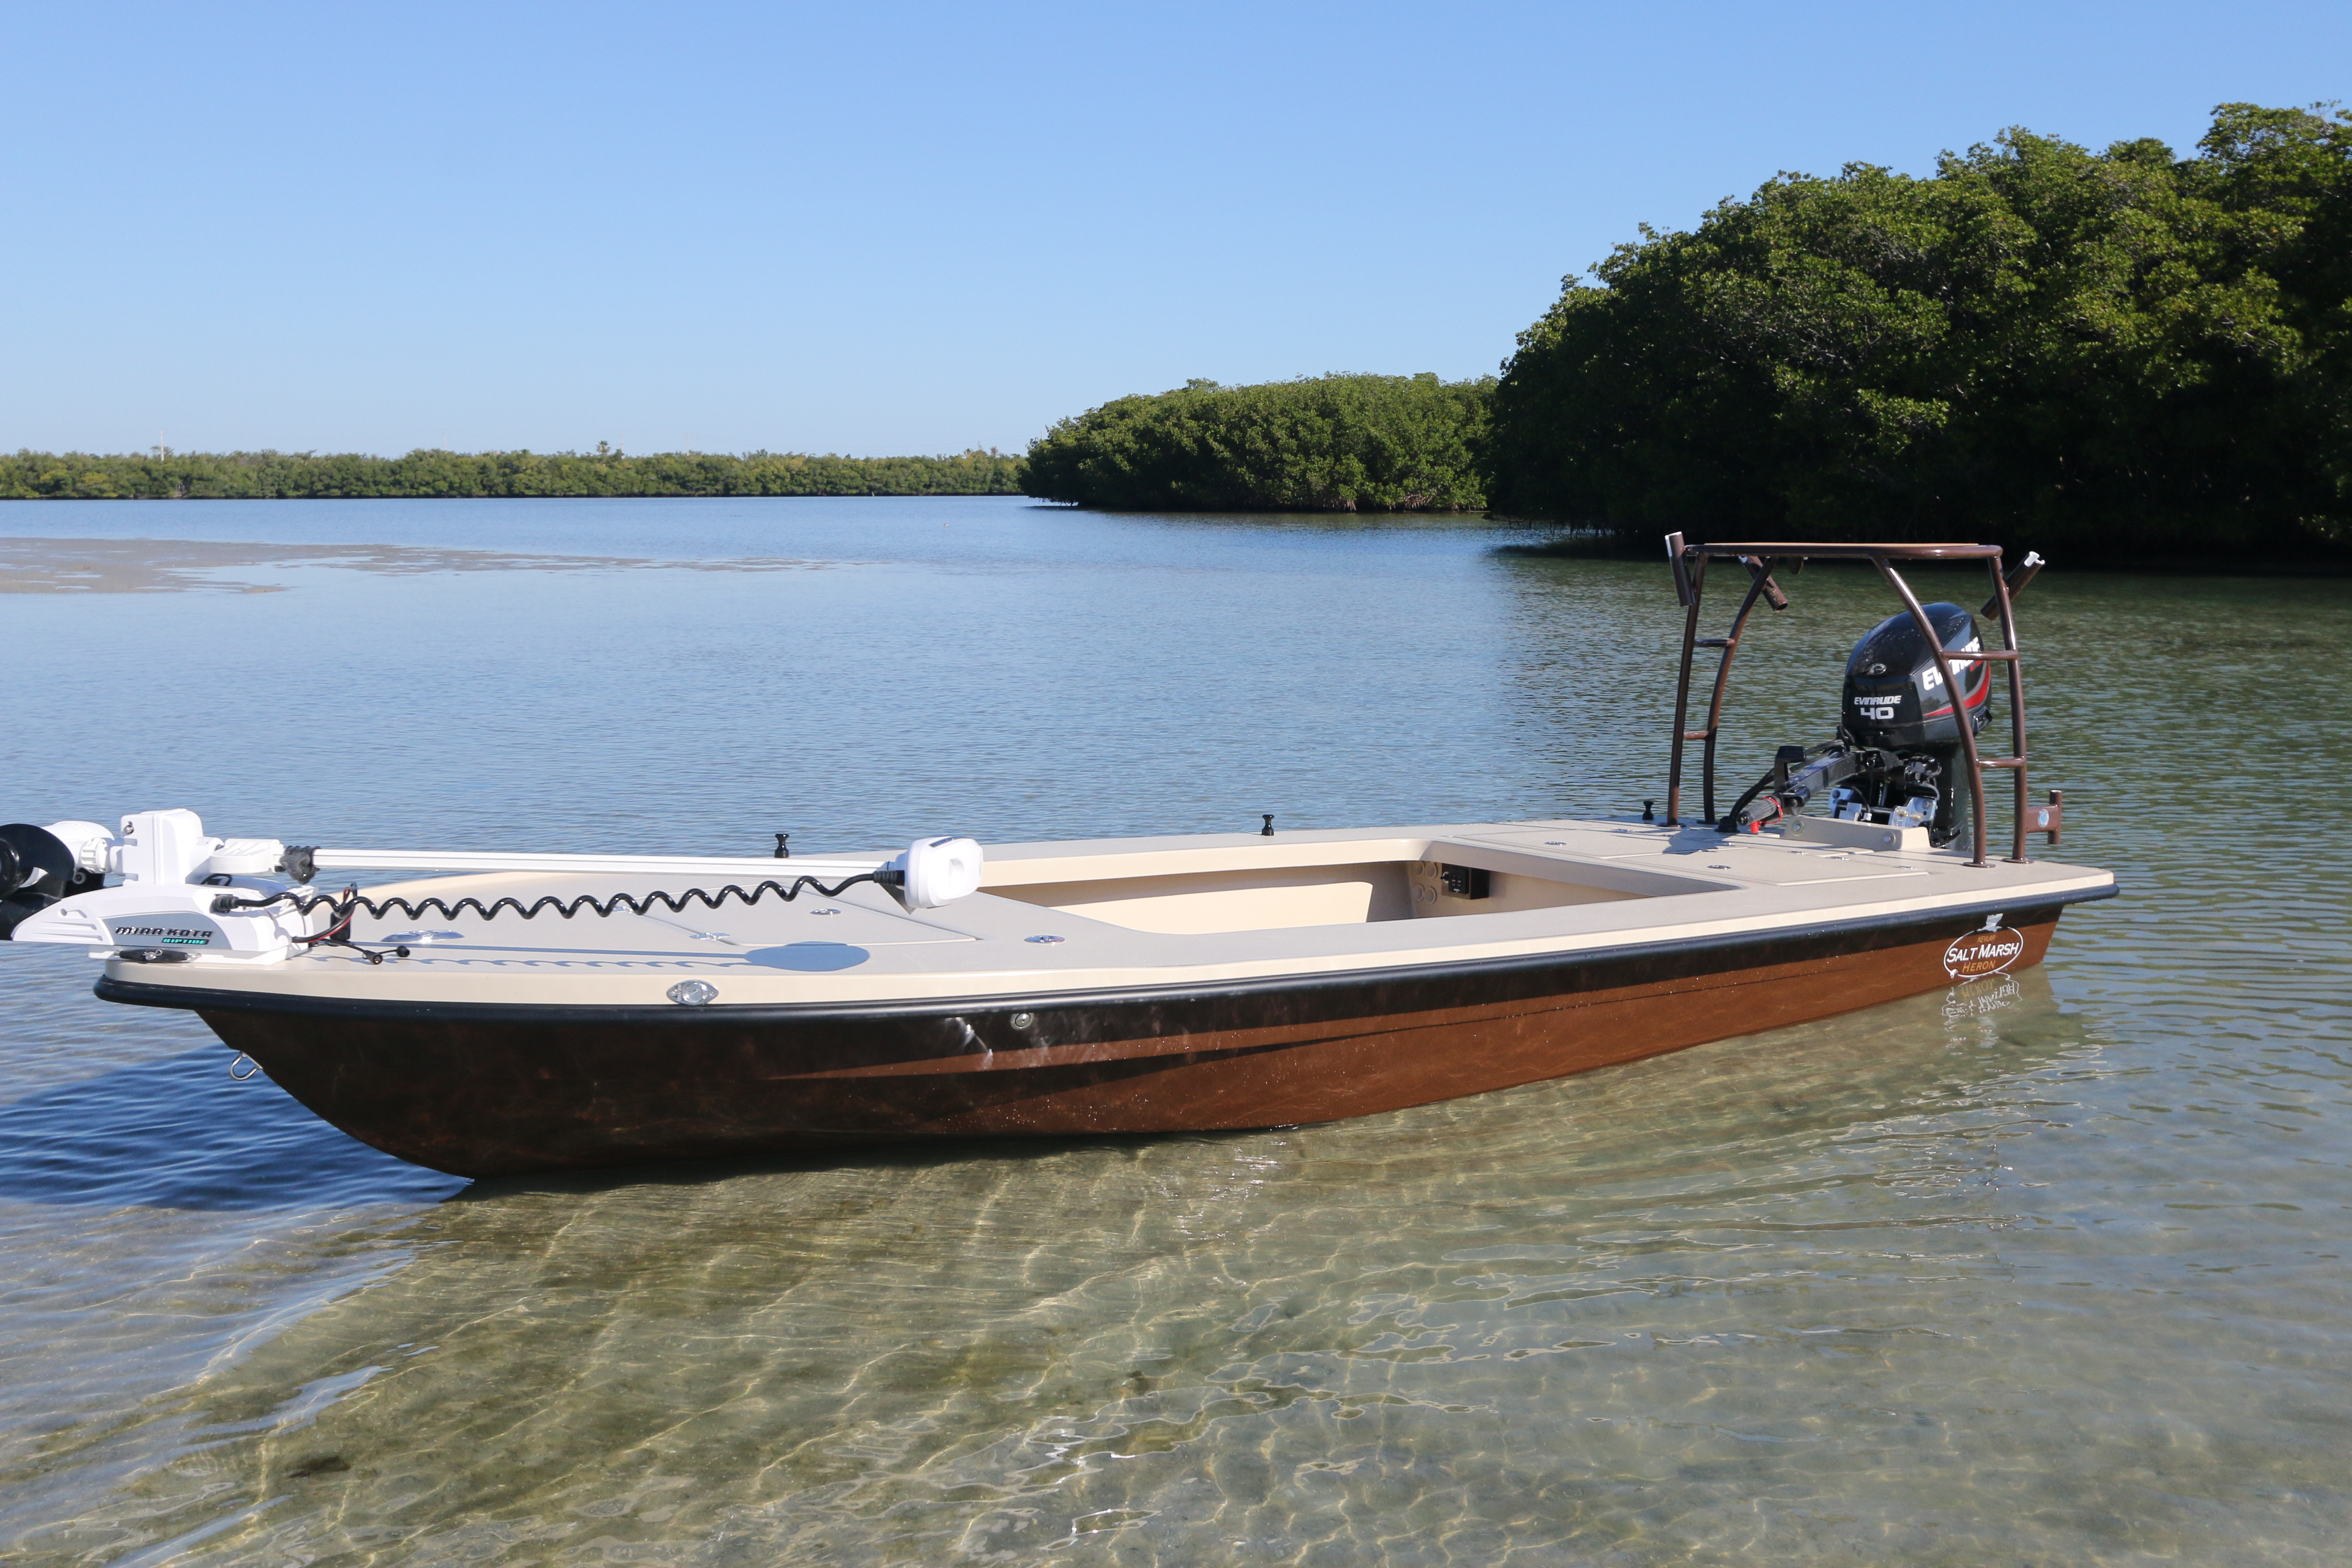 Best 40hp Outboard Tiller | Page 2 | Microskiff - Dedicated To The